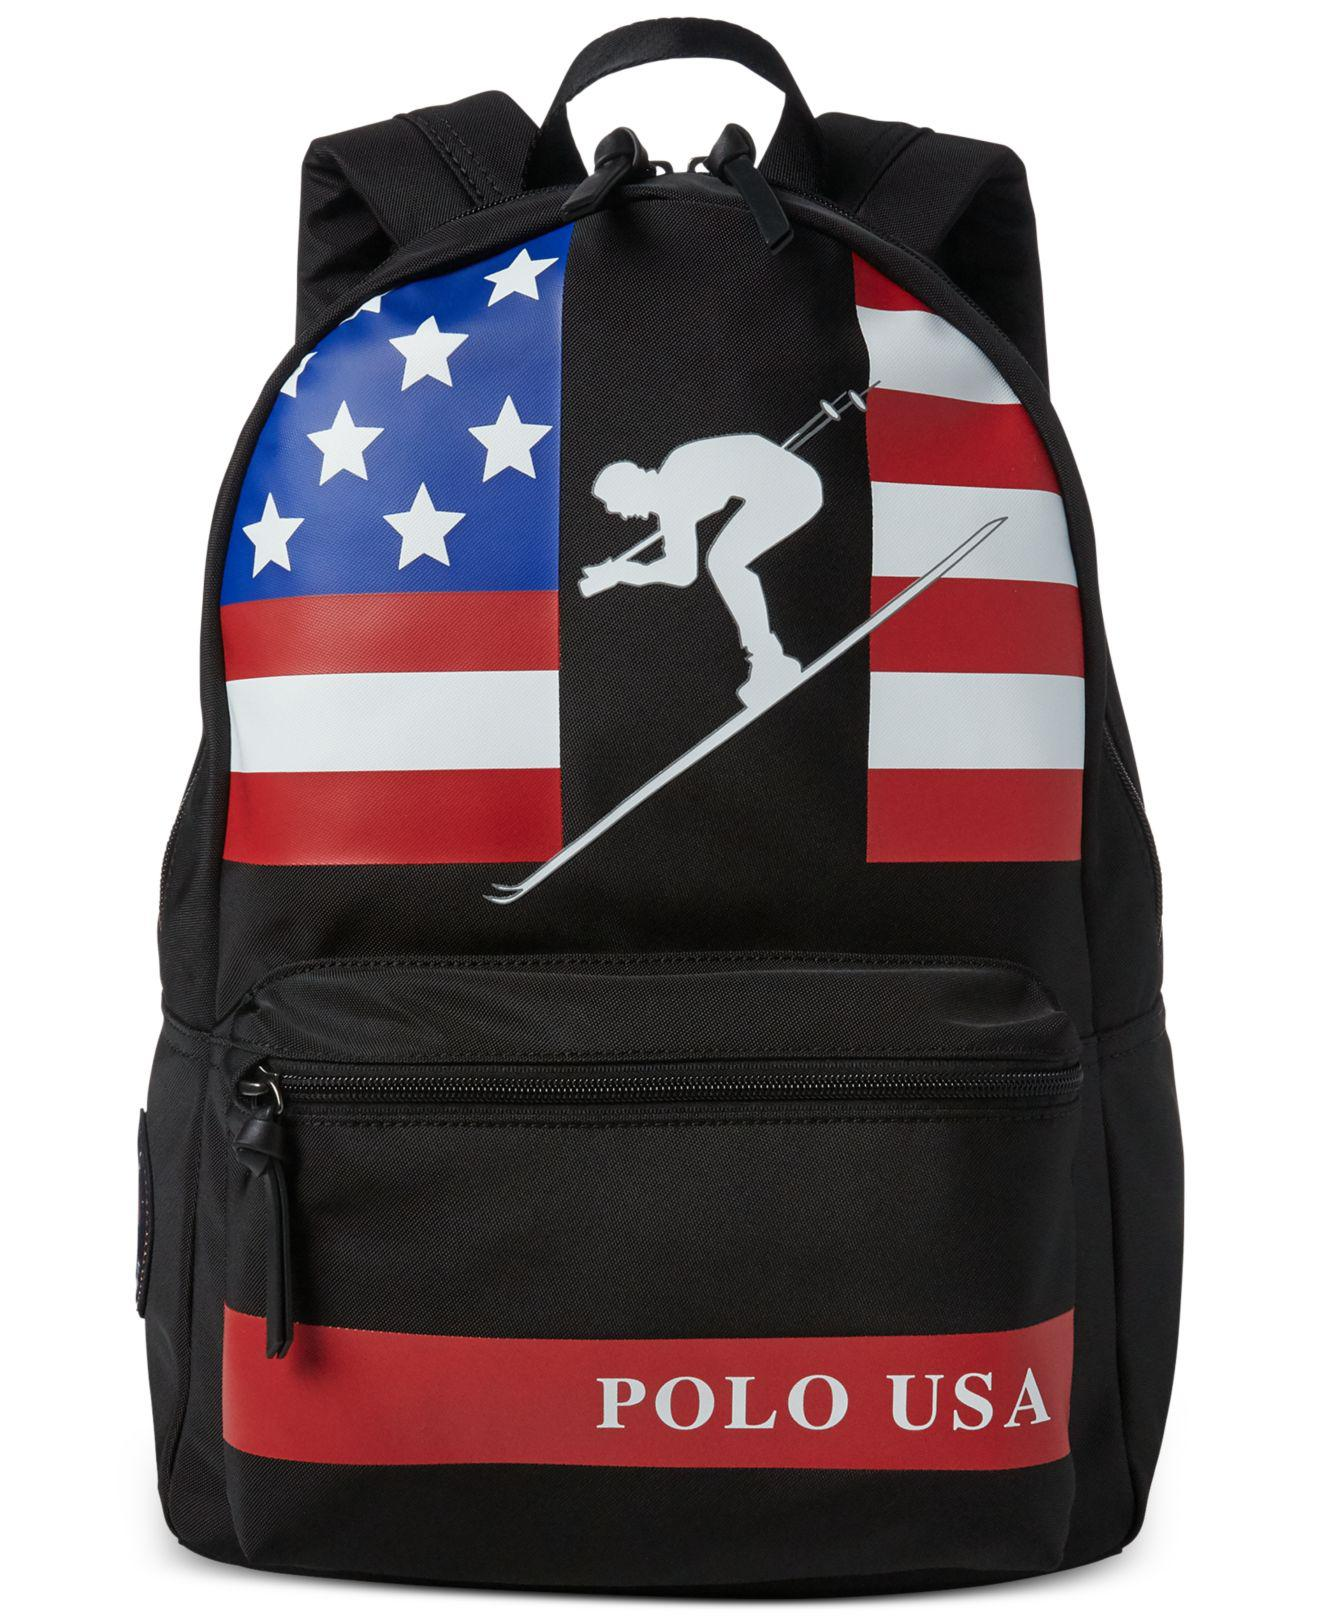 182b2413bdf8 Lyst - Polo Ralph Lauren Water-repellent Downhill Skier Backpack in ...